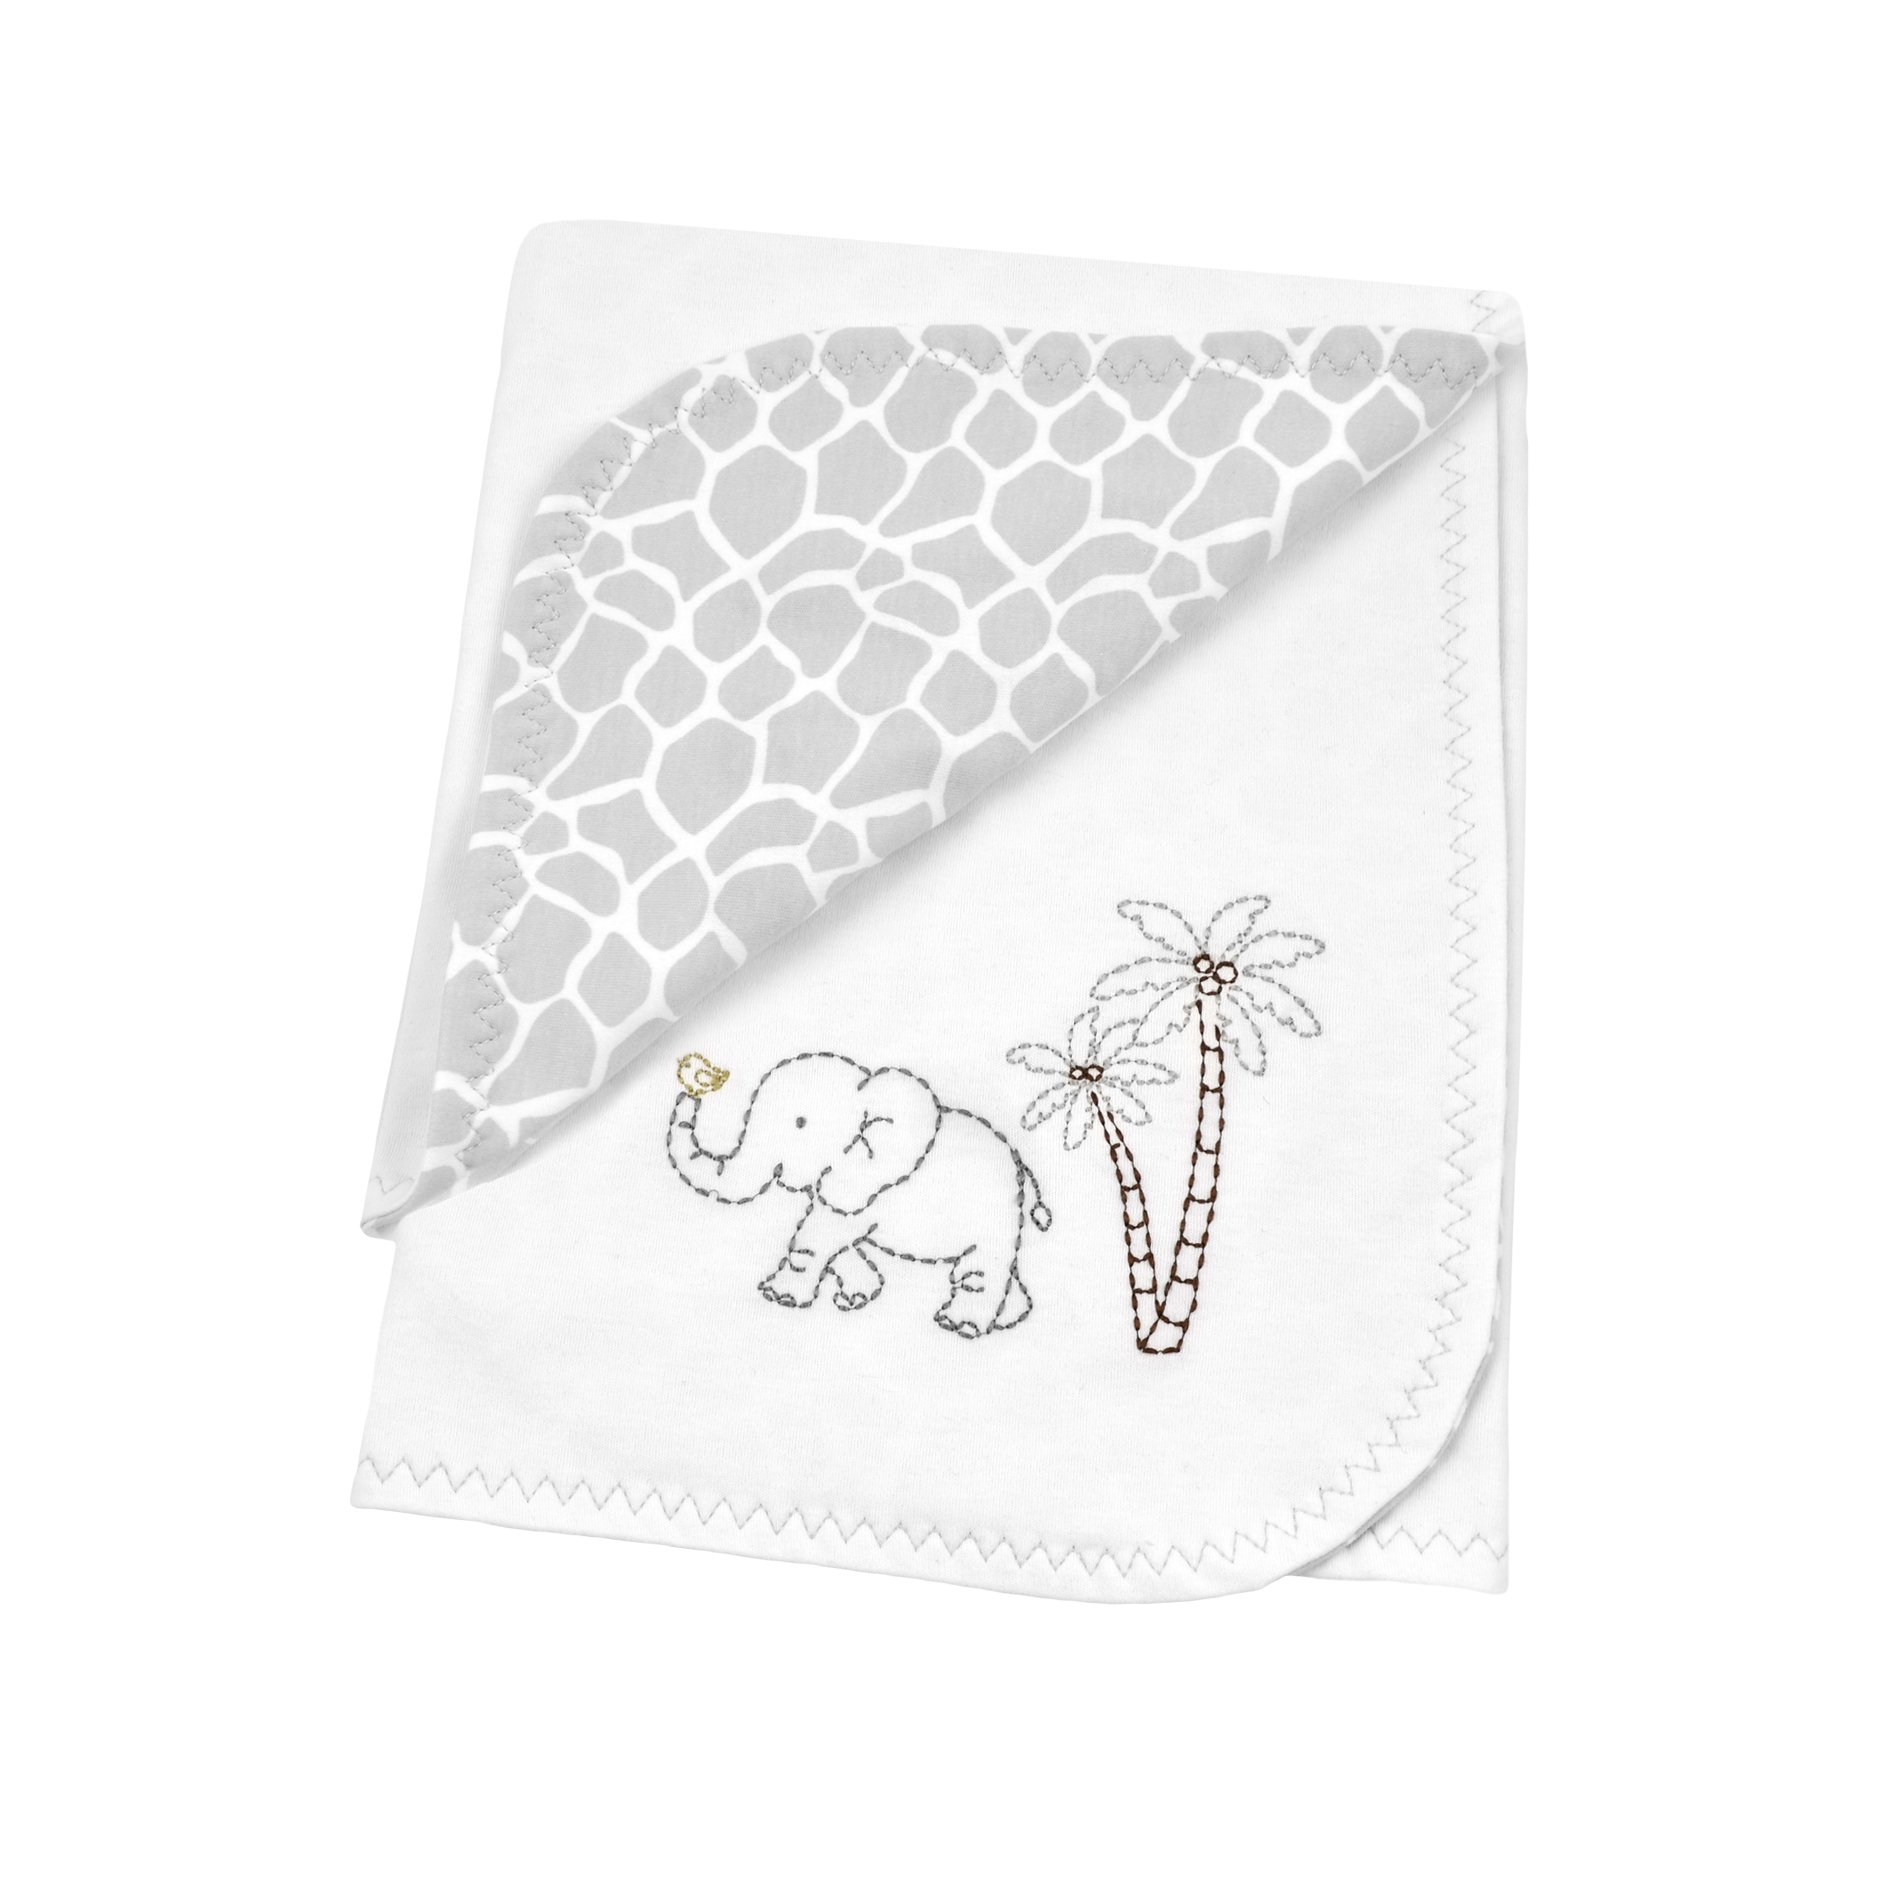 Just Born Animal Kingdom Comfort Blanket 100% Cotton Knit Giraffe Print, White/Grey by Just Born